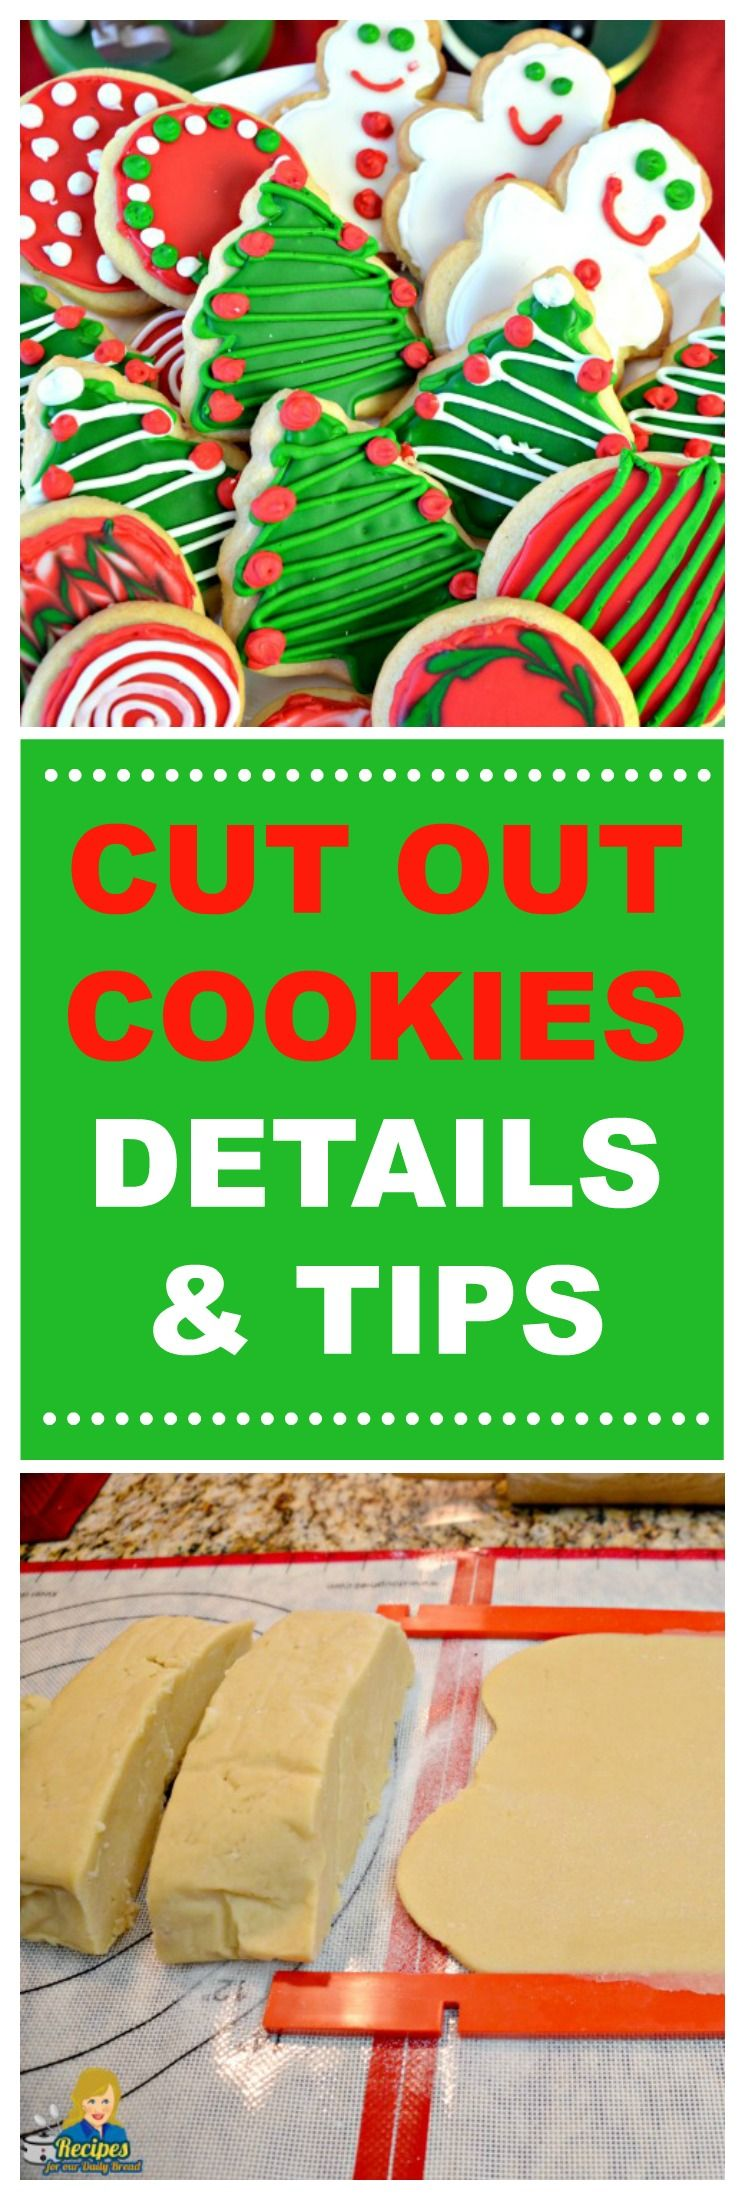 CUT OUT COOKIES TIPS & TRICKS MAKE BEAUTIFUL COOKIES